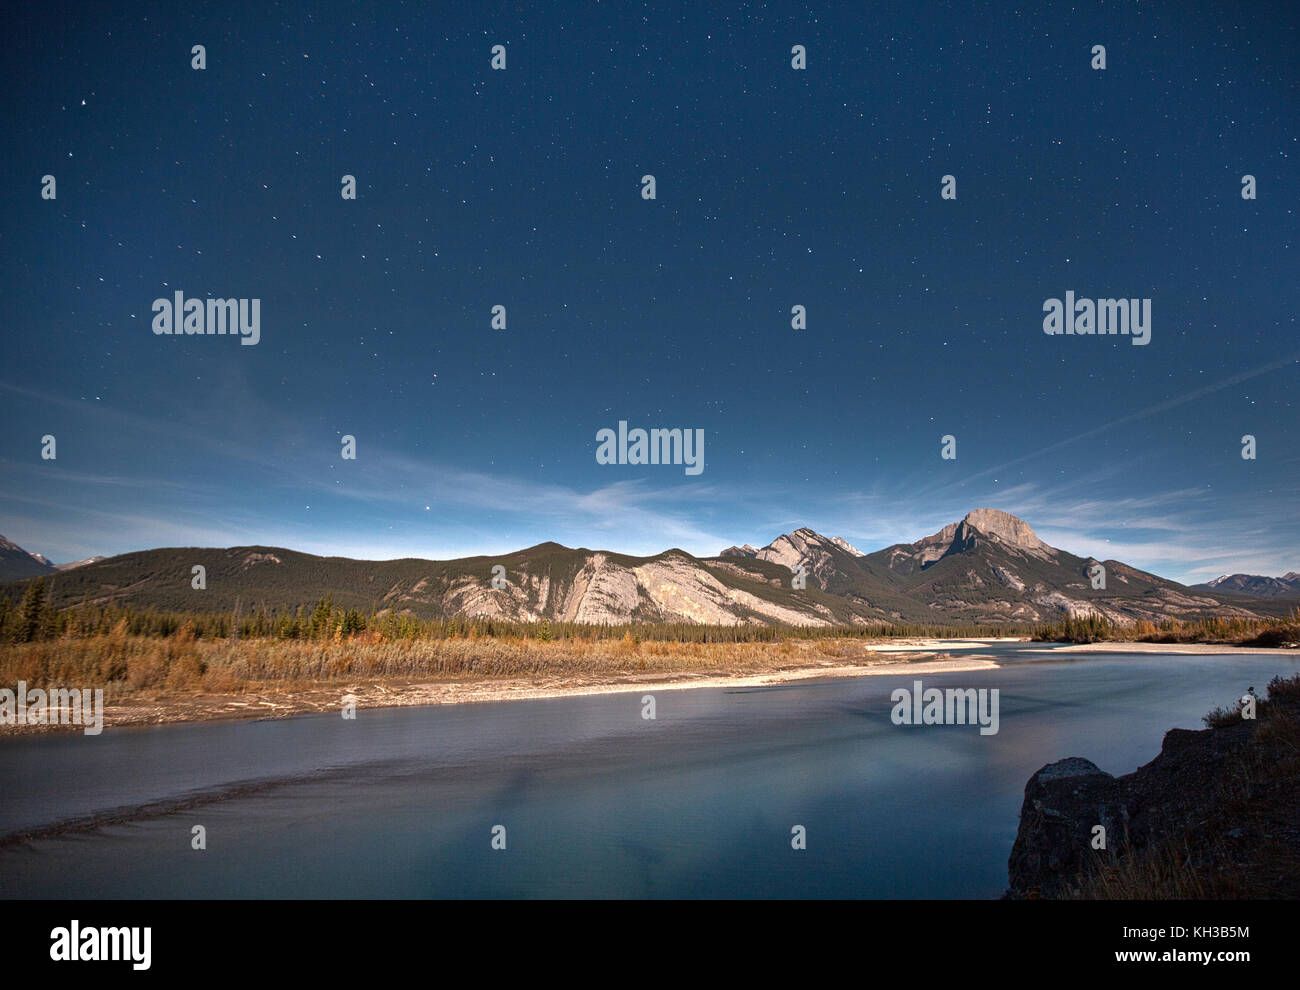 a night sky filled with stars above a mountain in the Canadian Rockies, Alberta - Stock Image